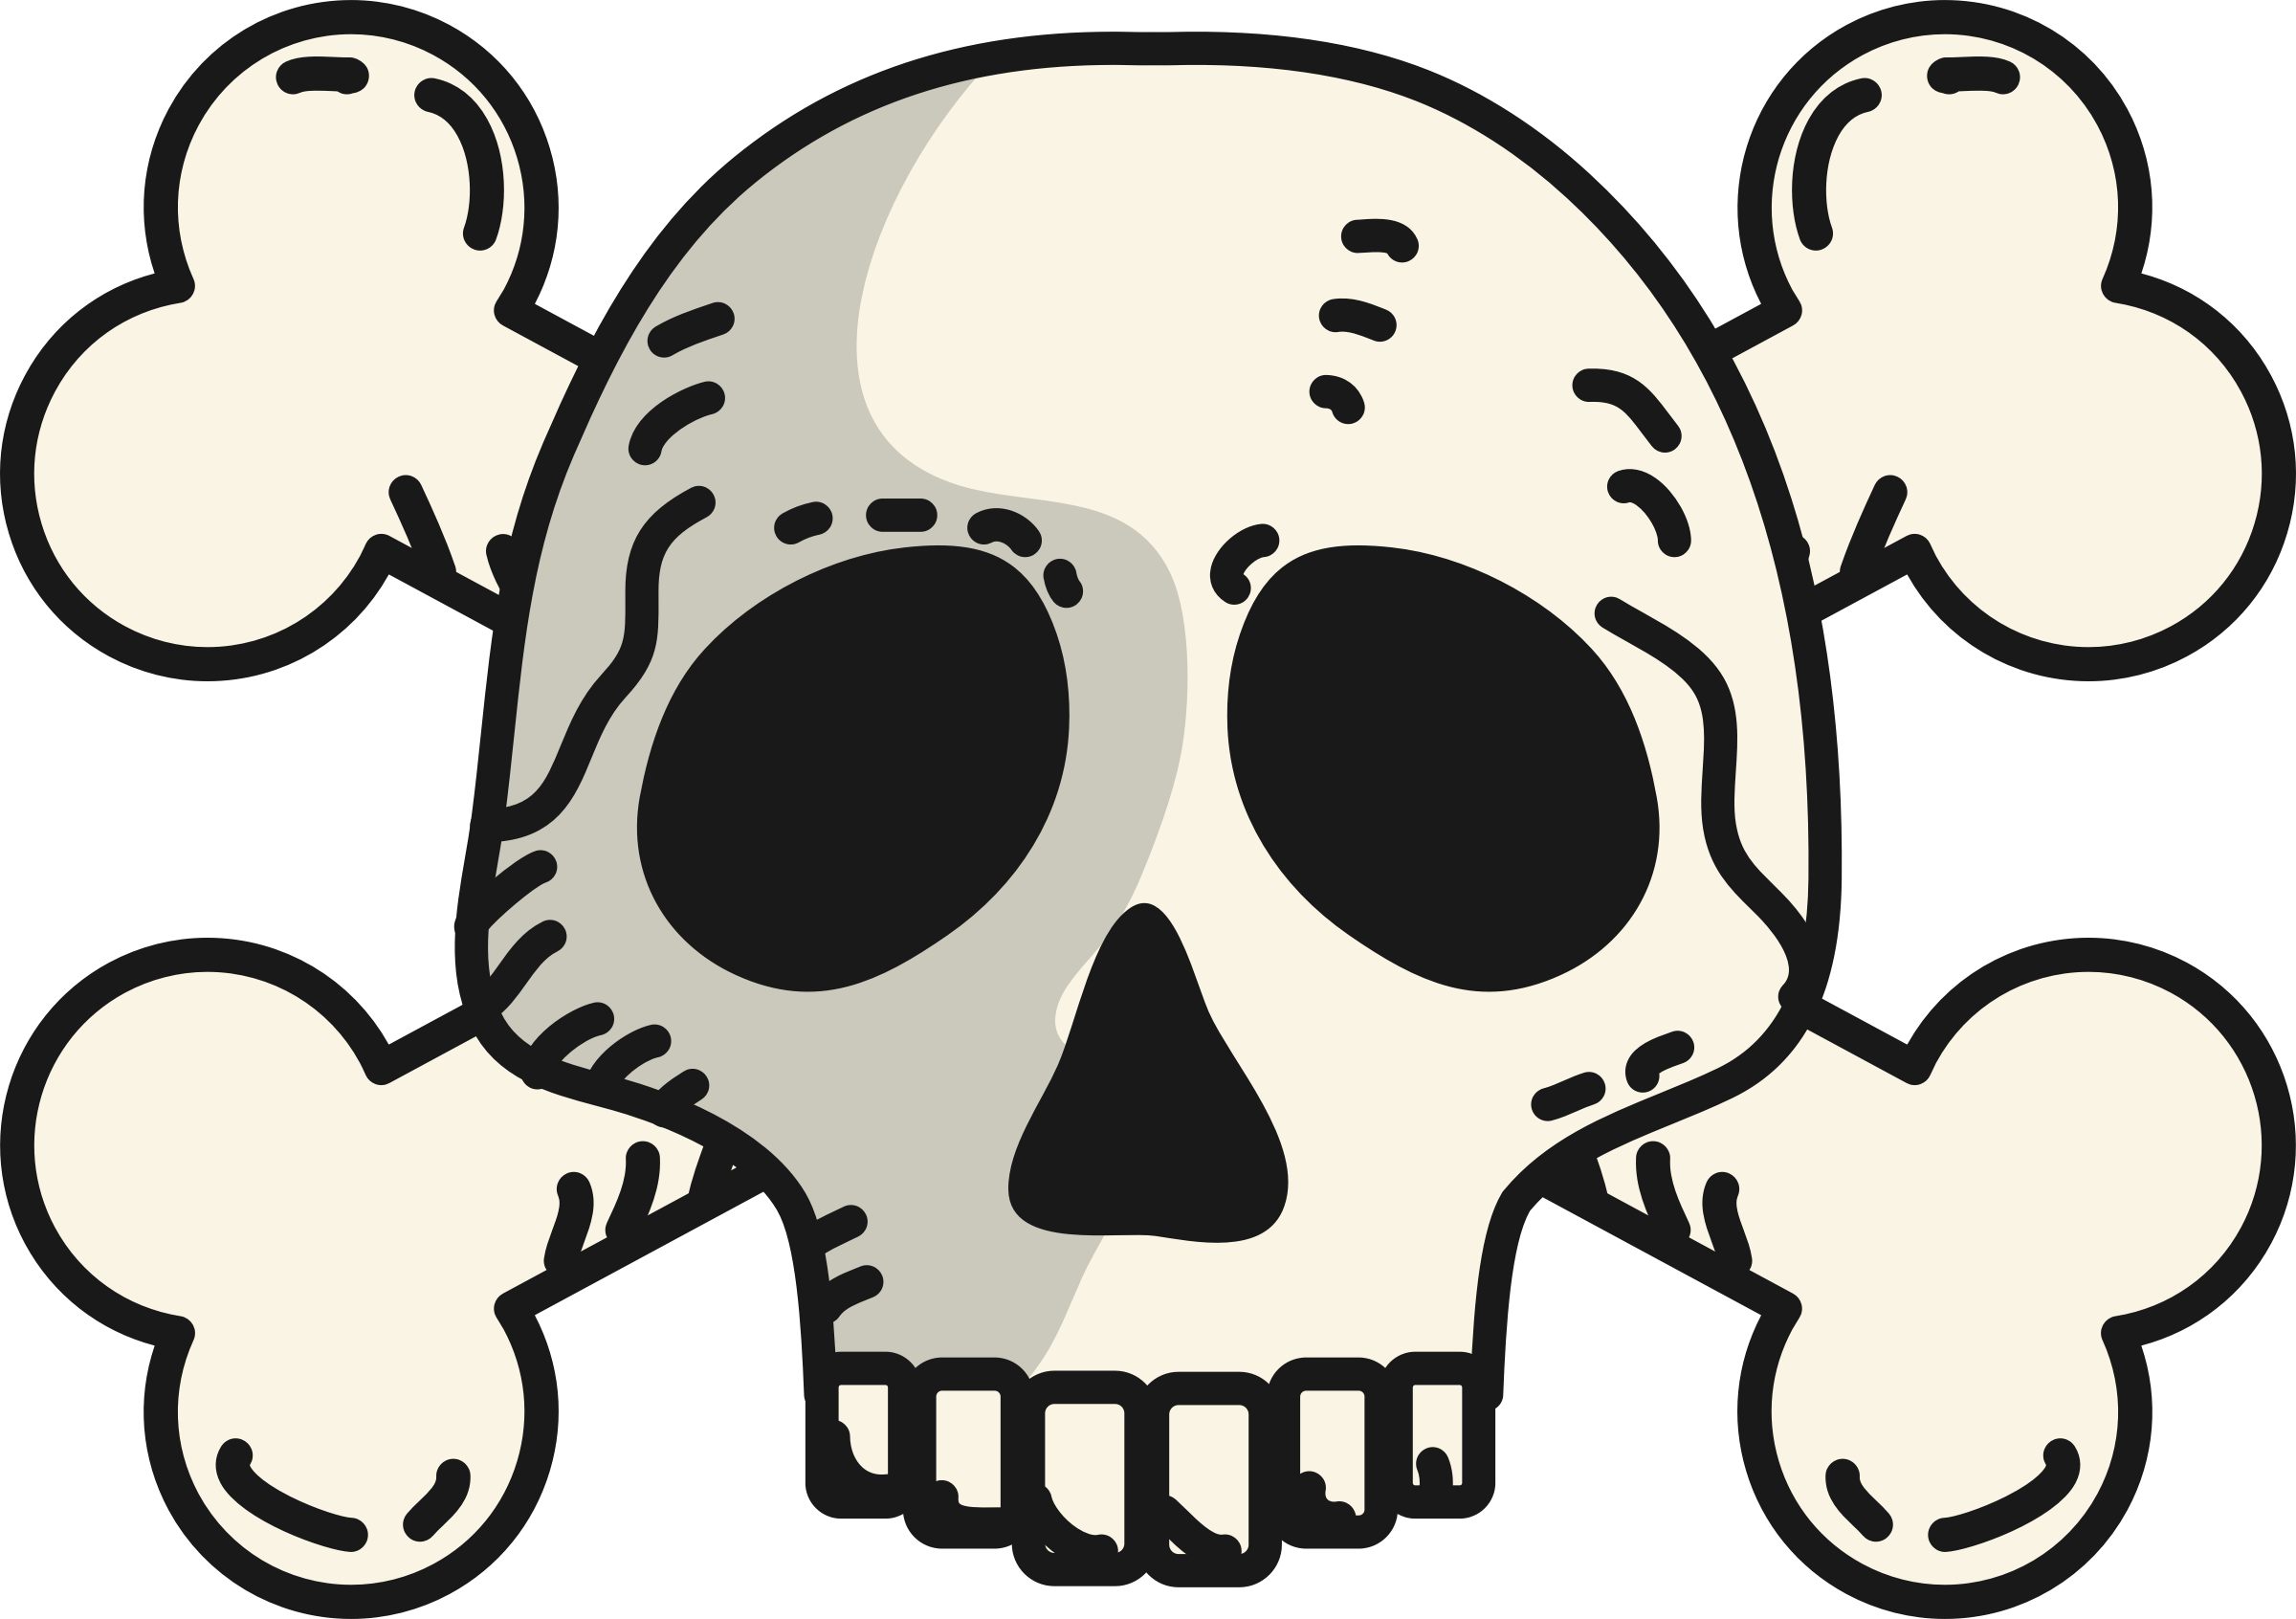 Skull and crossbones with sun glasses clipart clipart library stock Skull And Crossbones Clipart at GetDrawings.com | Free for personal ... clipart library stock